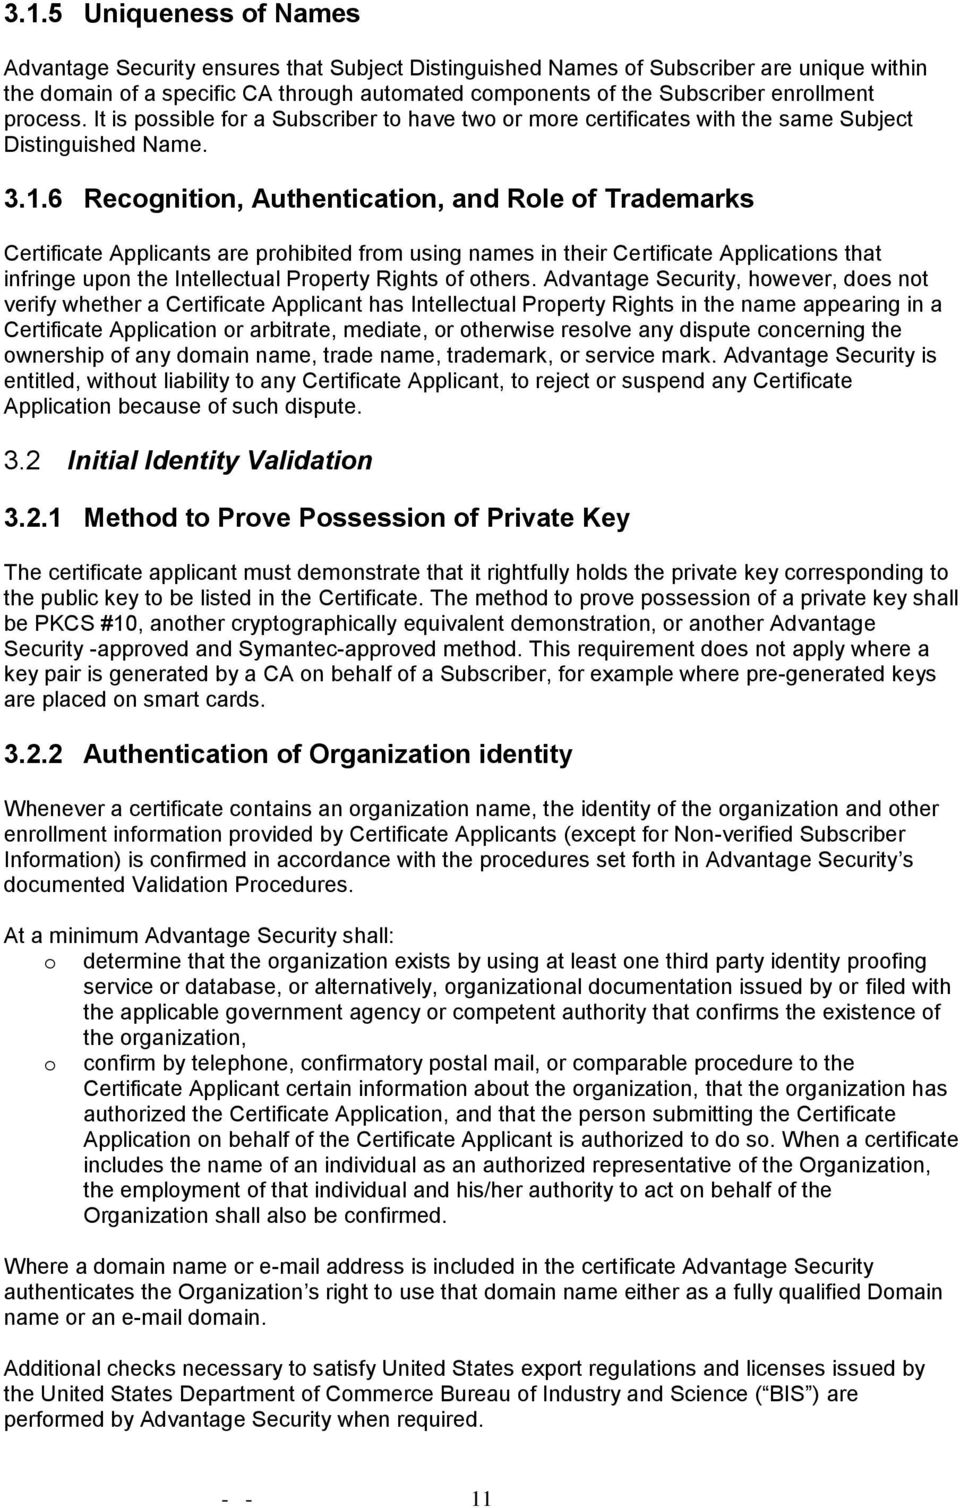 6 Recognition, Authentication, and Role of Trademarks Certificate Applicants are prohibited from using names in their Certificate Applications that infringe upon the Intellectual Property Rights of